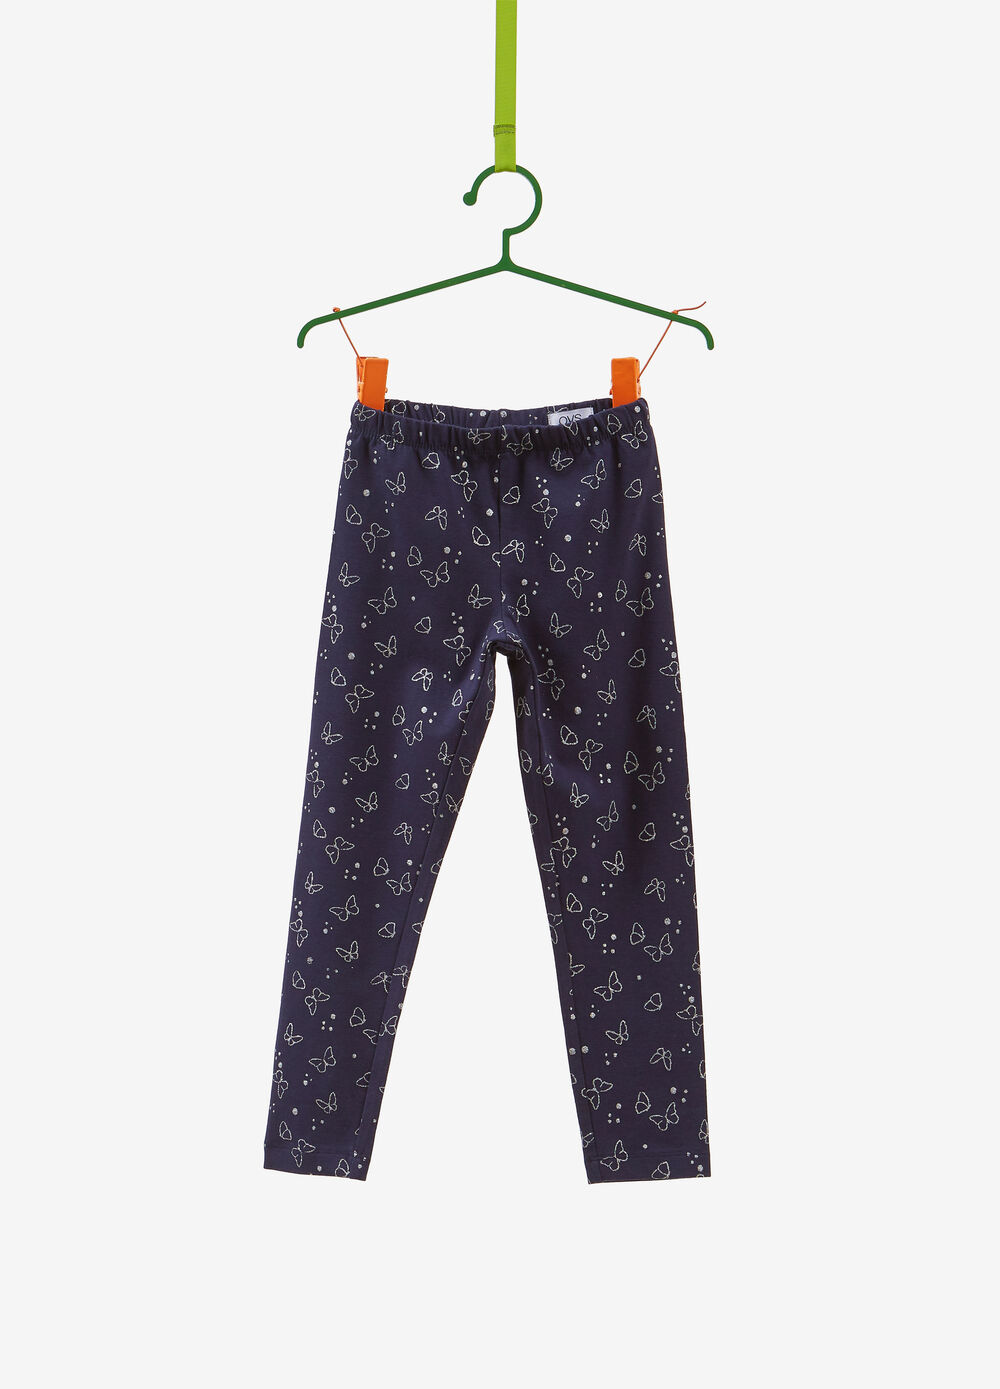 Stretch leggings with butterfly glitter print